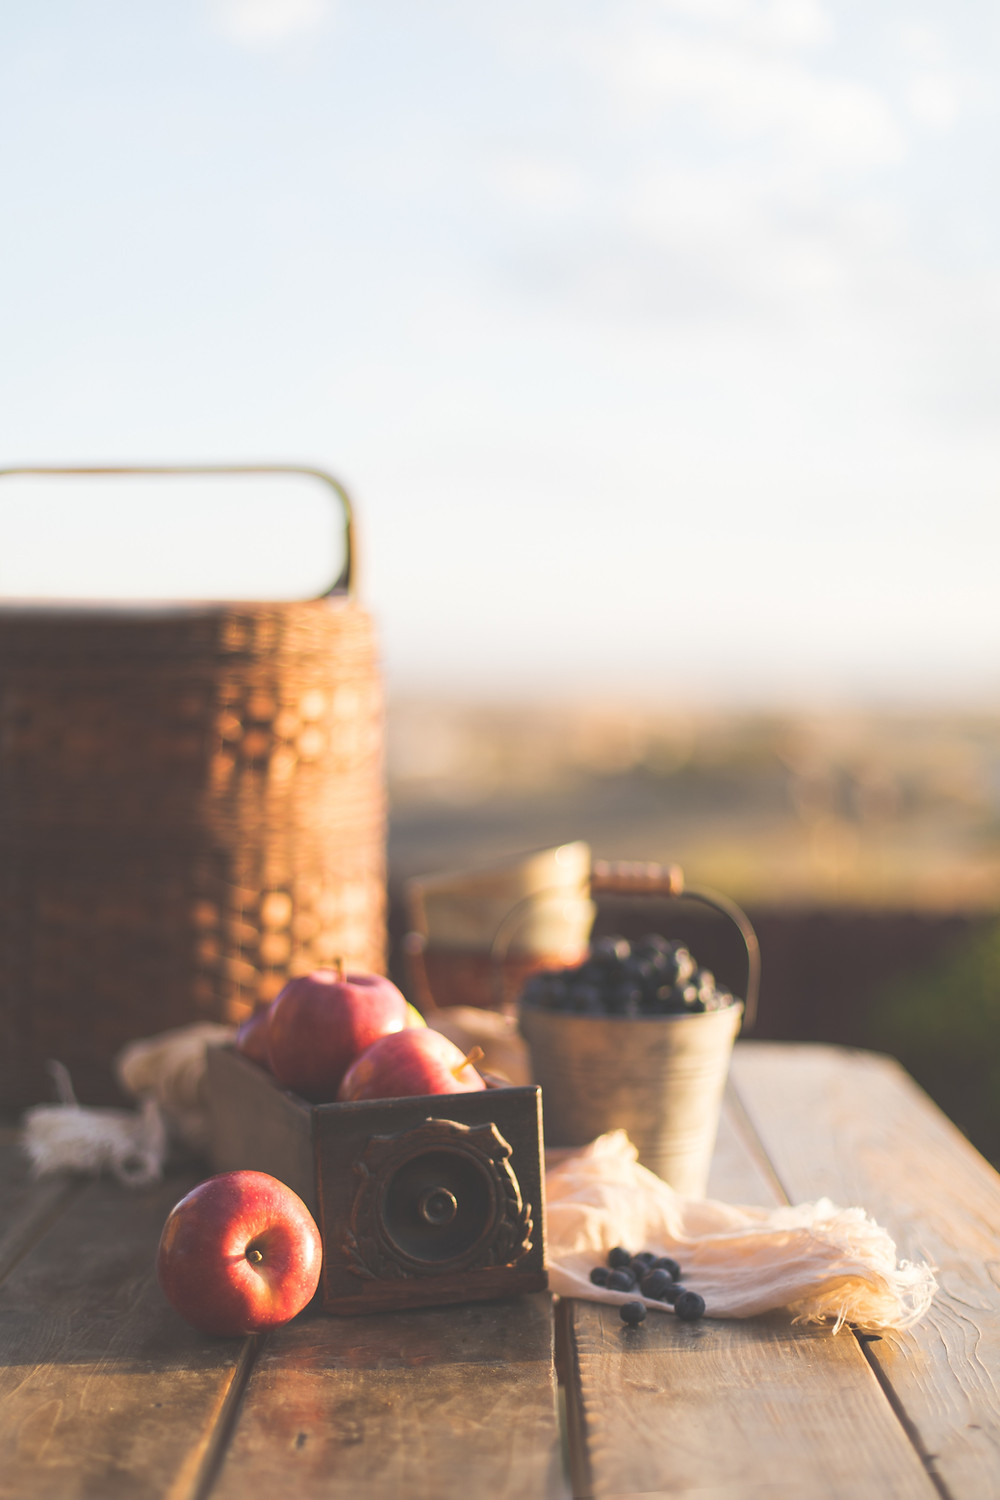 Picnic table with apples and blueberries inside a basket.